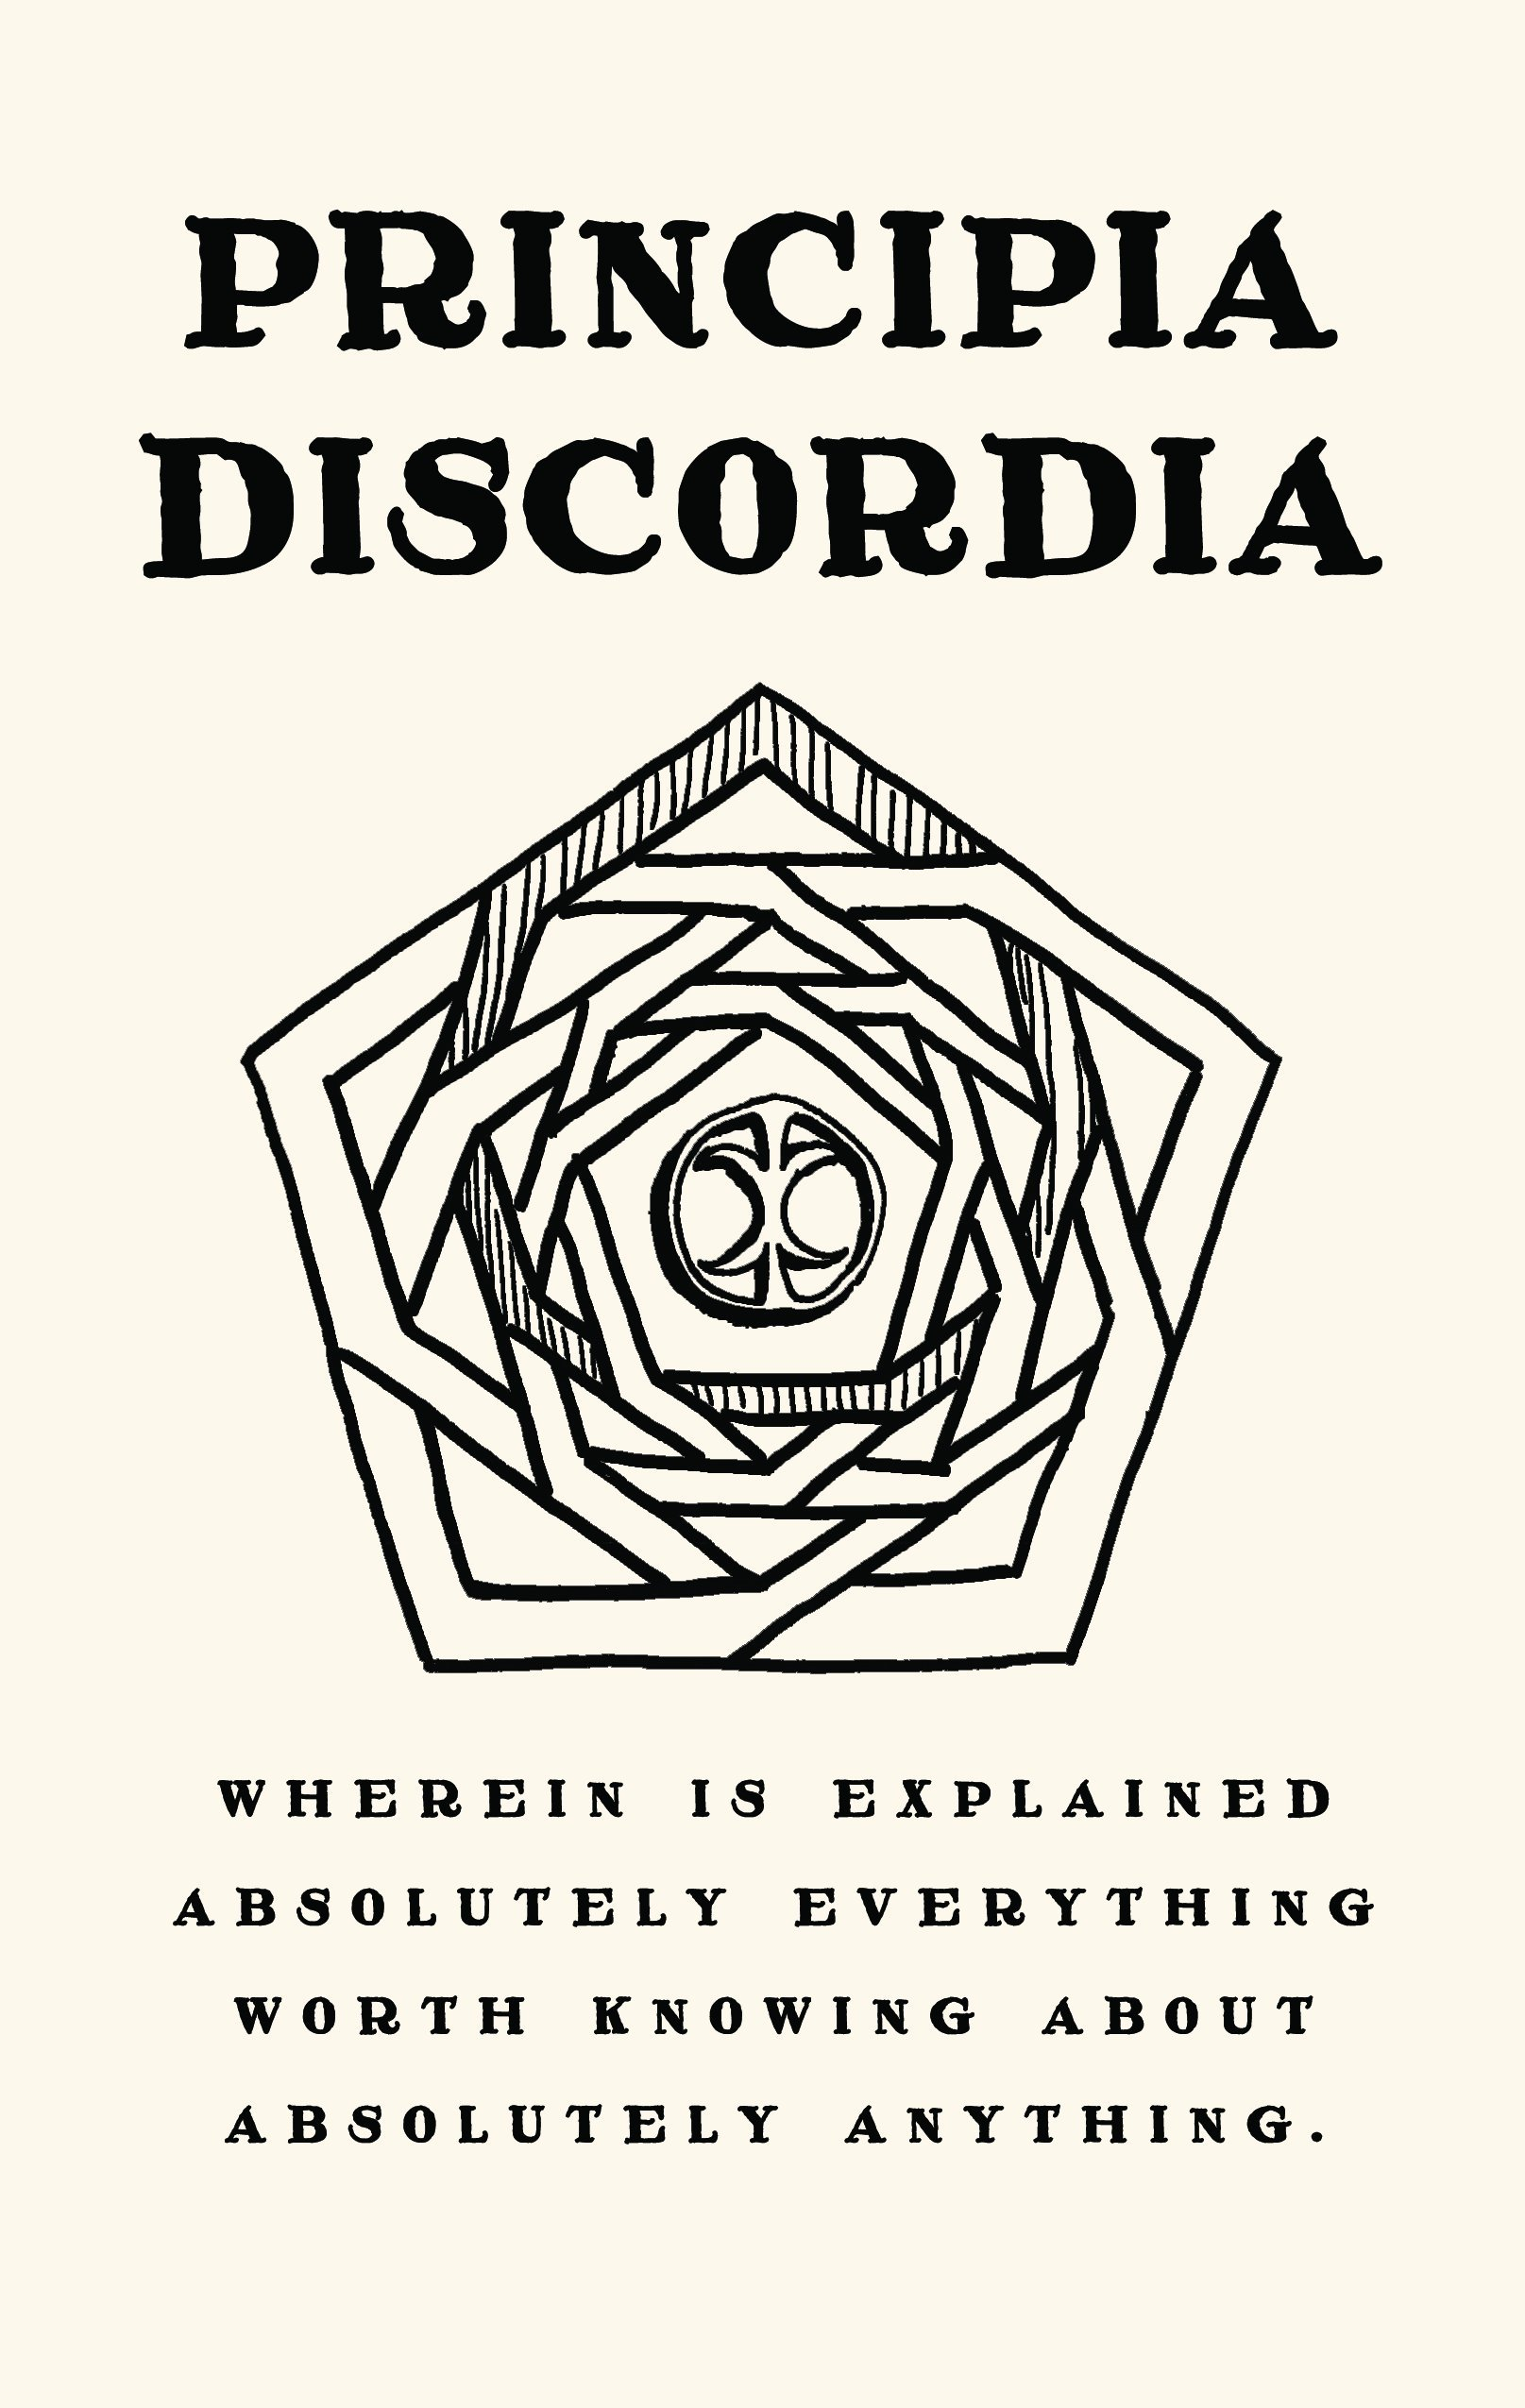 Principia Discordia, or How I Found Goddess And What I Did To Her When I Found Her